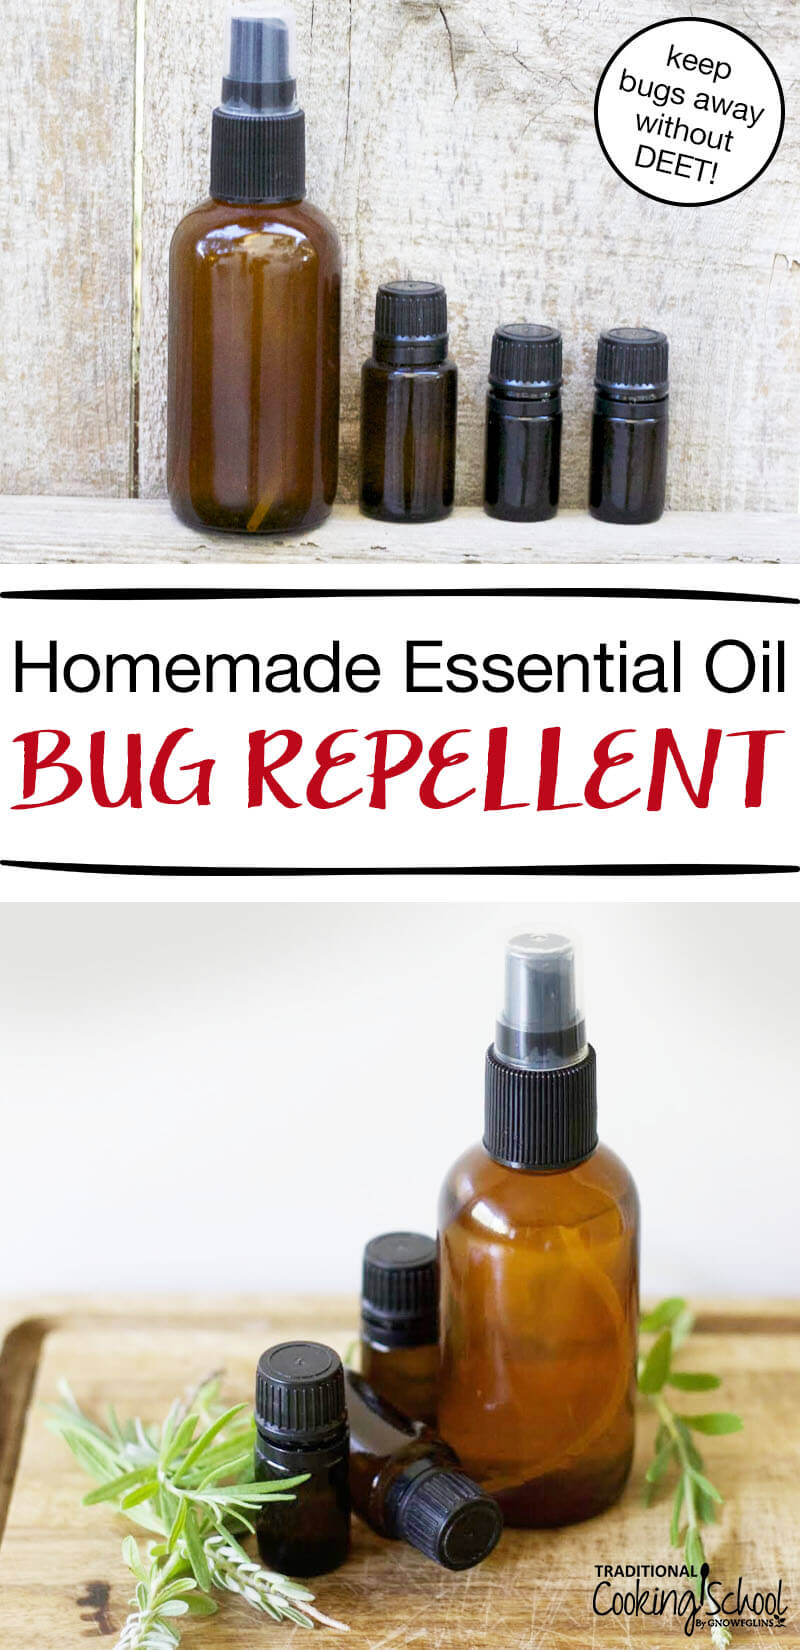 Homemade Essential Oil Bug Repellent | Summer is in full swing and that means social gatherings! Unfortunately some uninvited guests like to join the party, too:pesky bugs. Most commercial bug repellents contain harmful DEET. Instead, try this homemade bug repellent that uses essential oils! | TraditionalCookingSchool.com